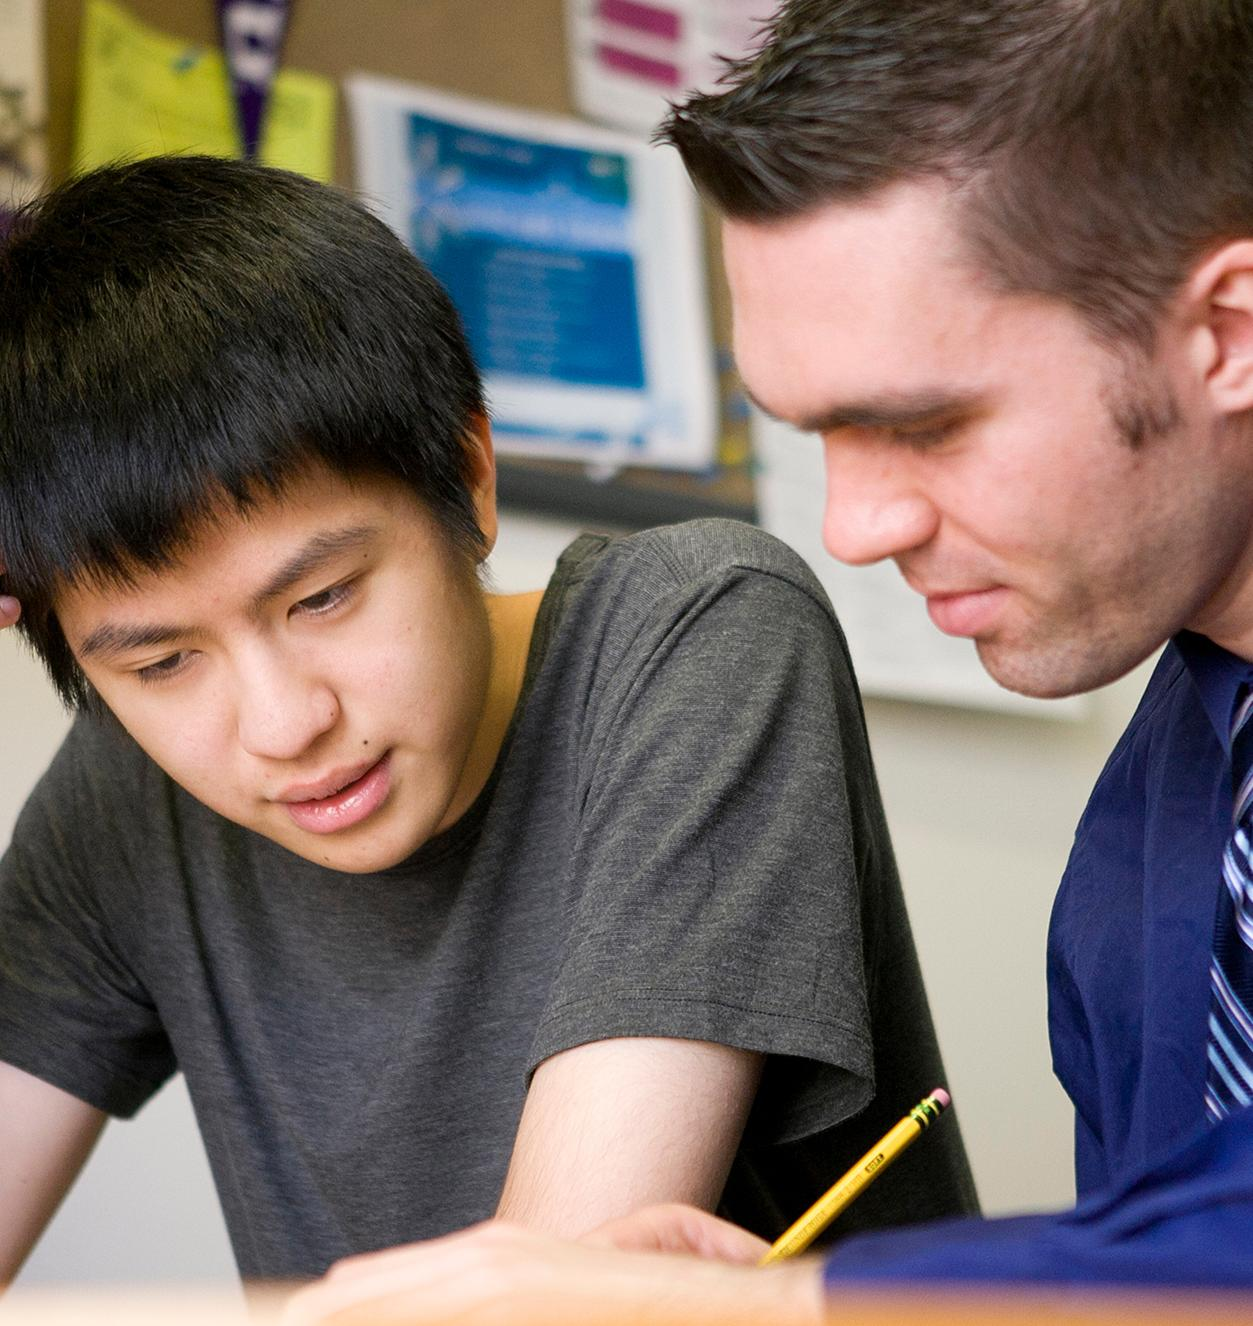 A student meets with an adviser one-on-one